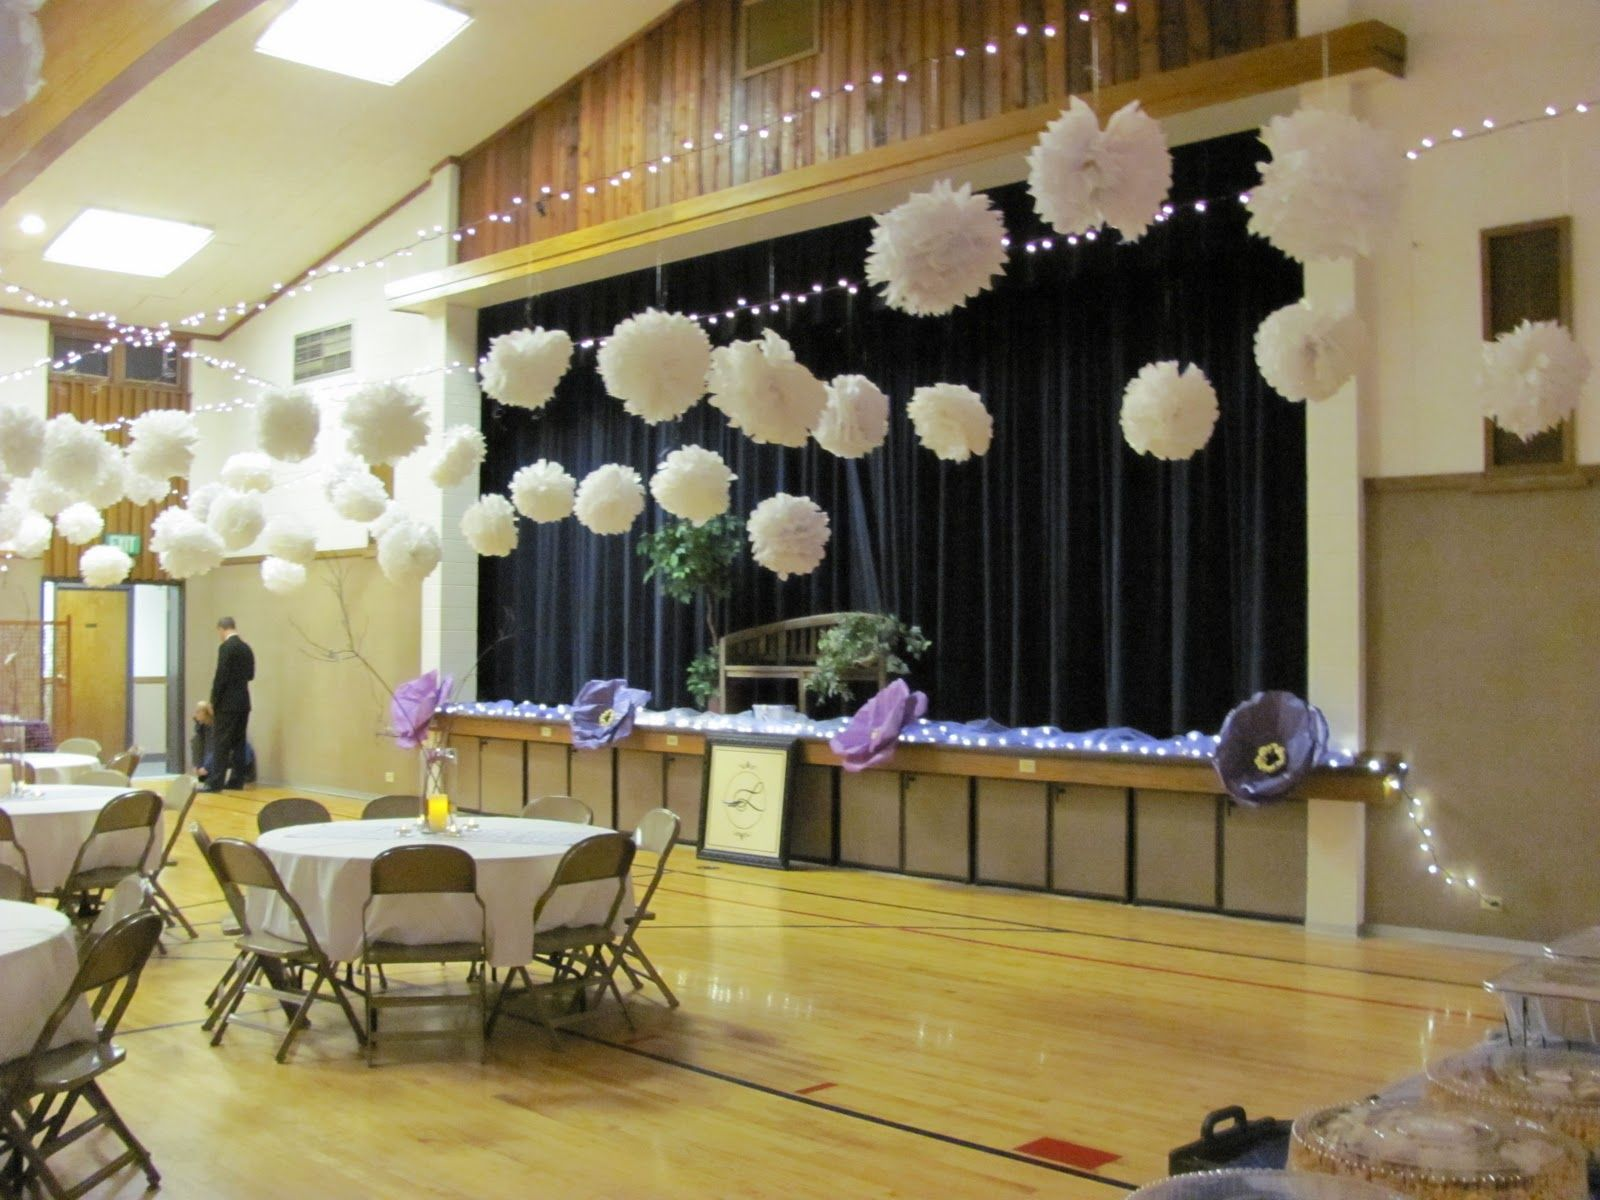 How To Decorate A Gym For Wedding